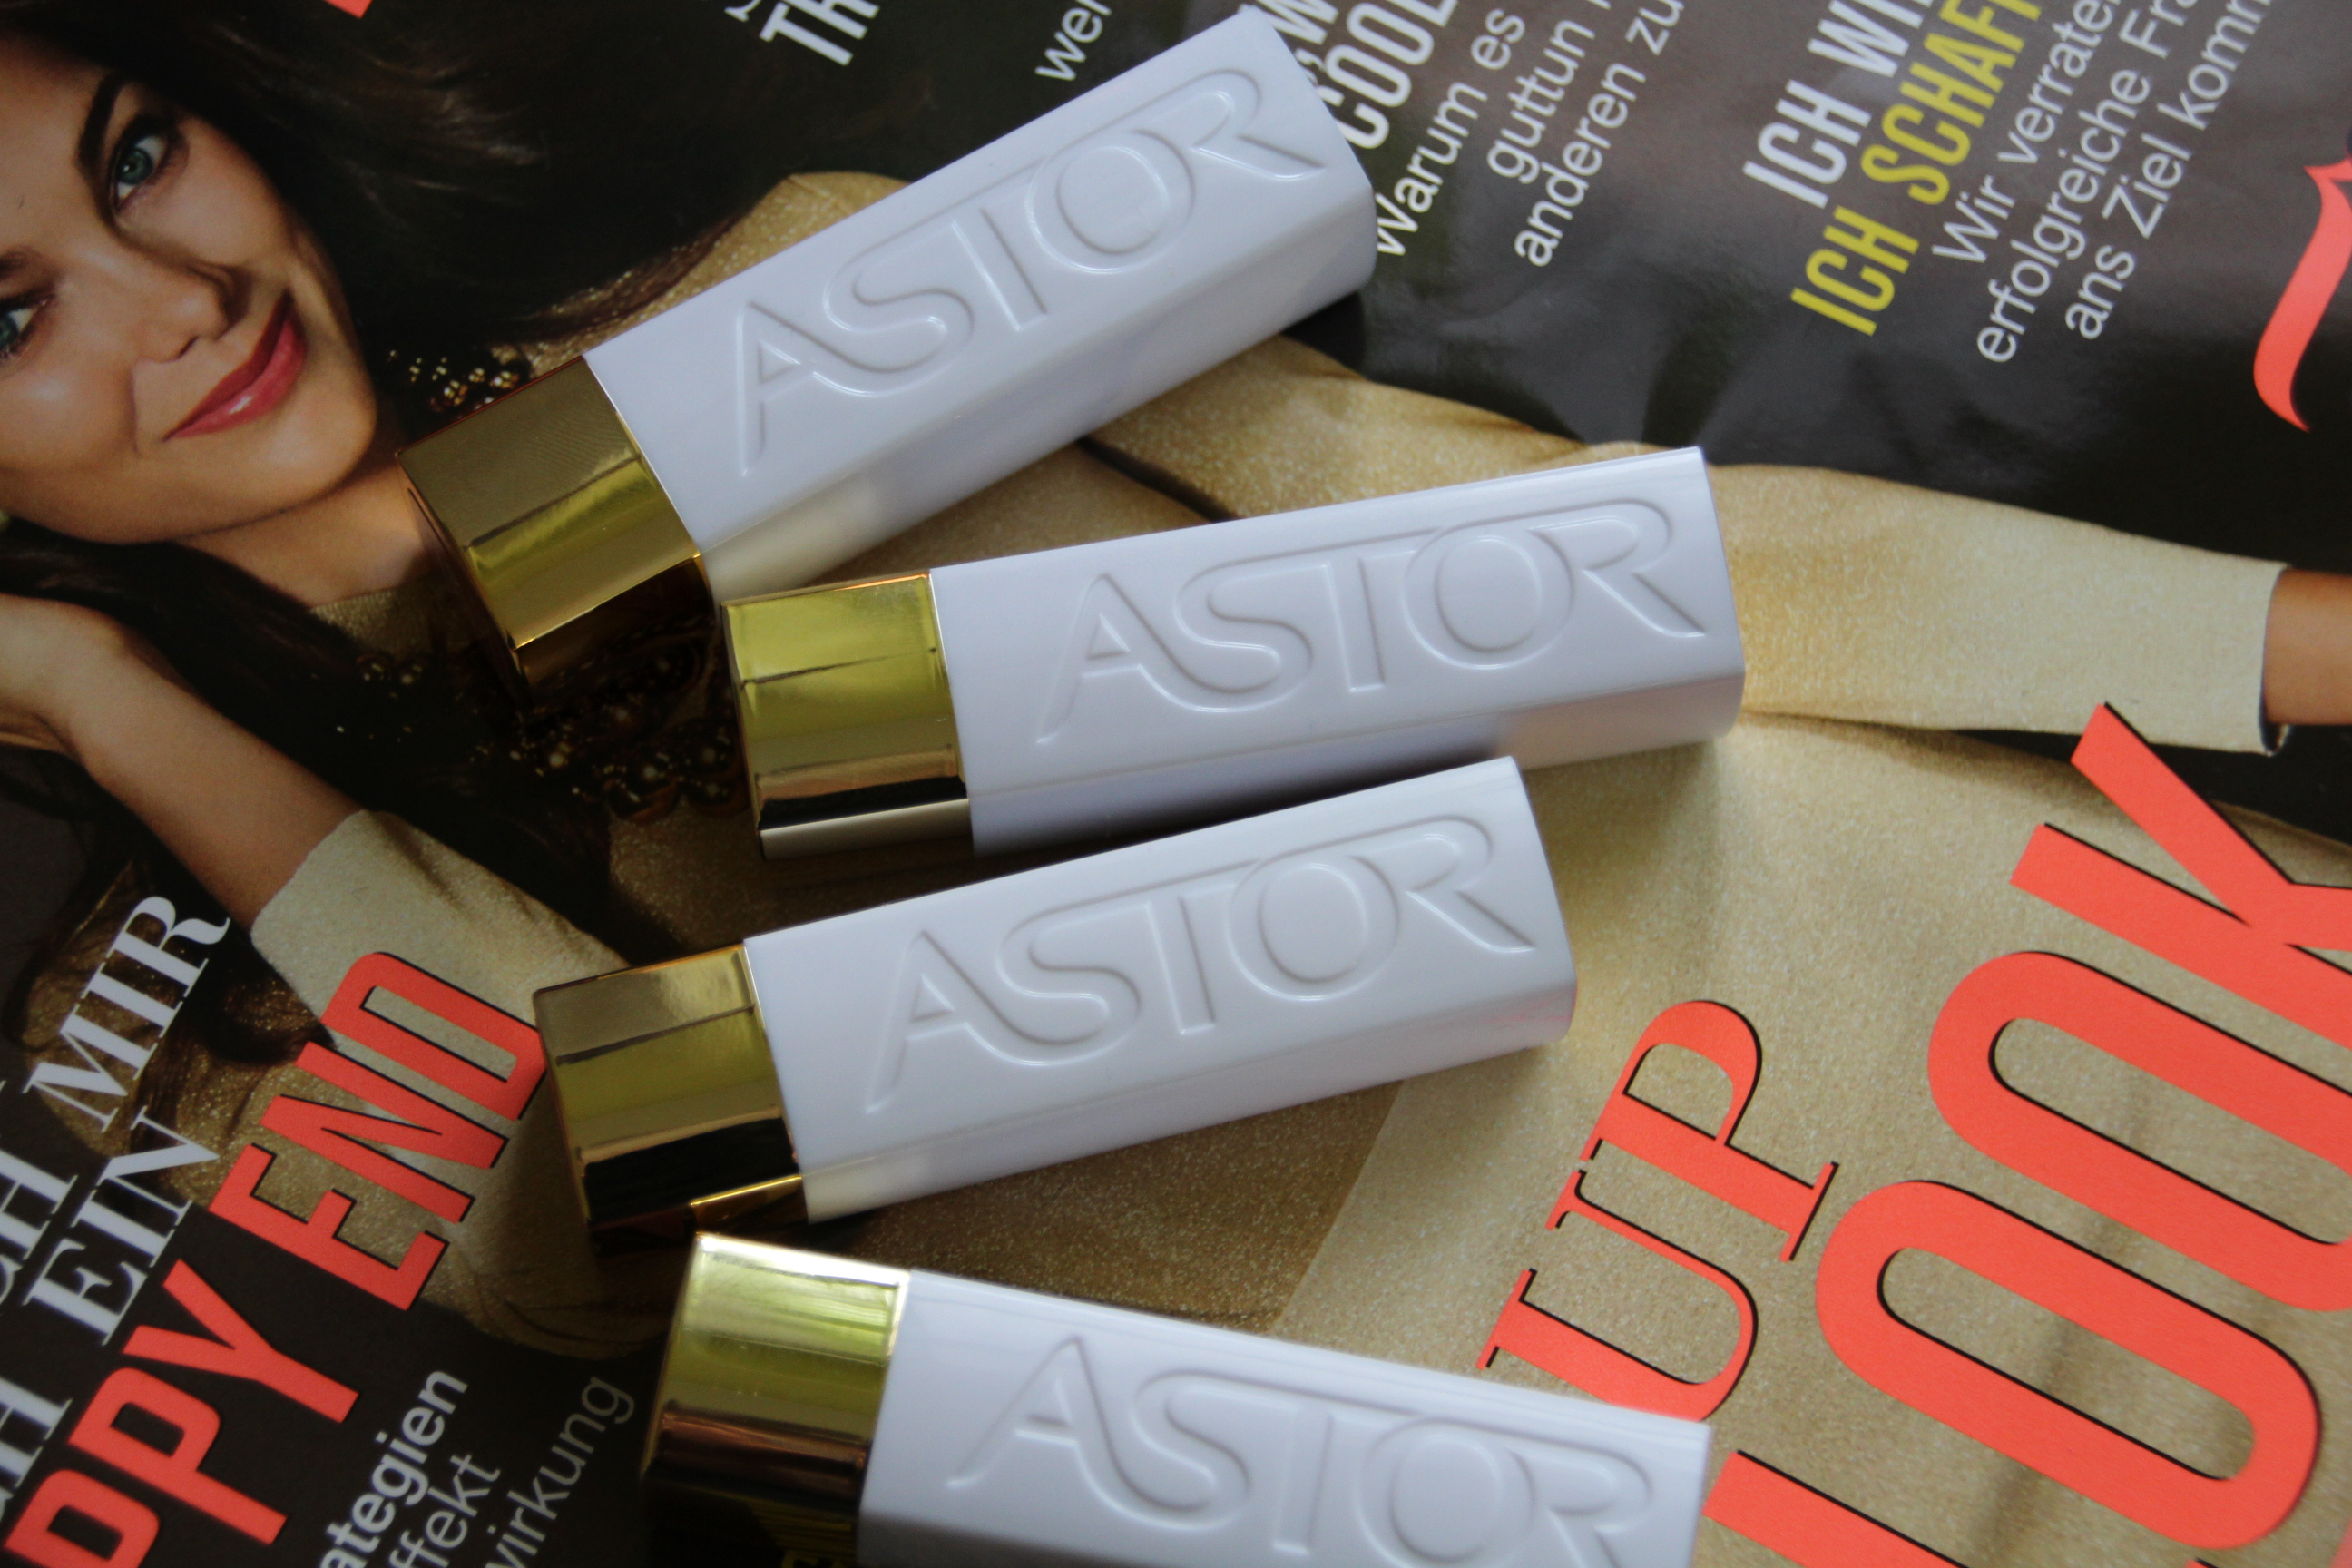 Astor_Lipsticks